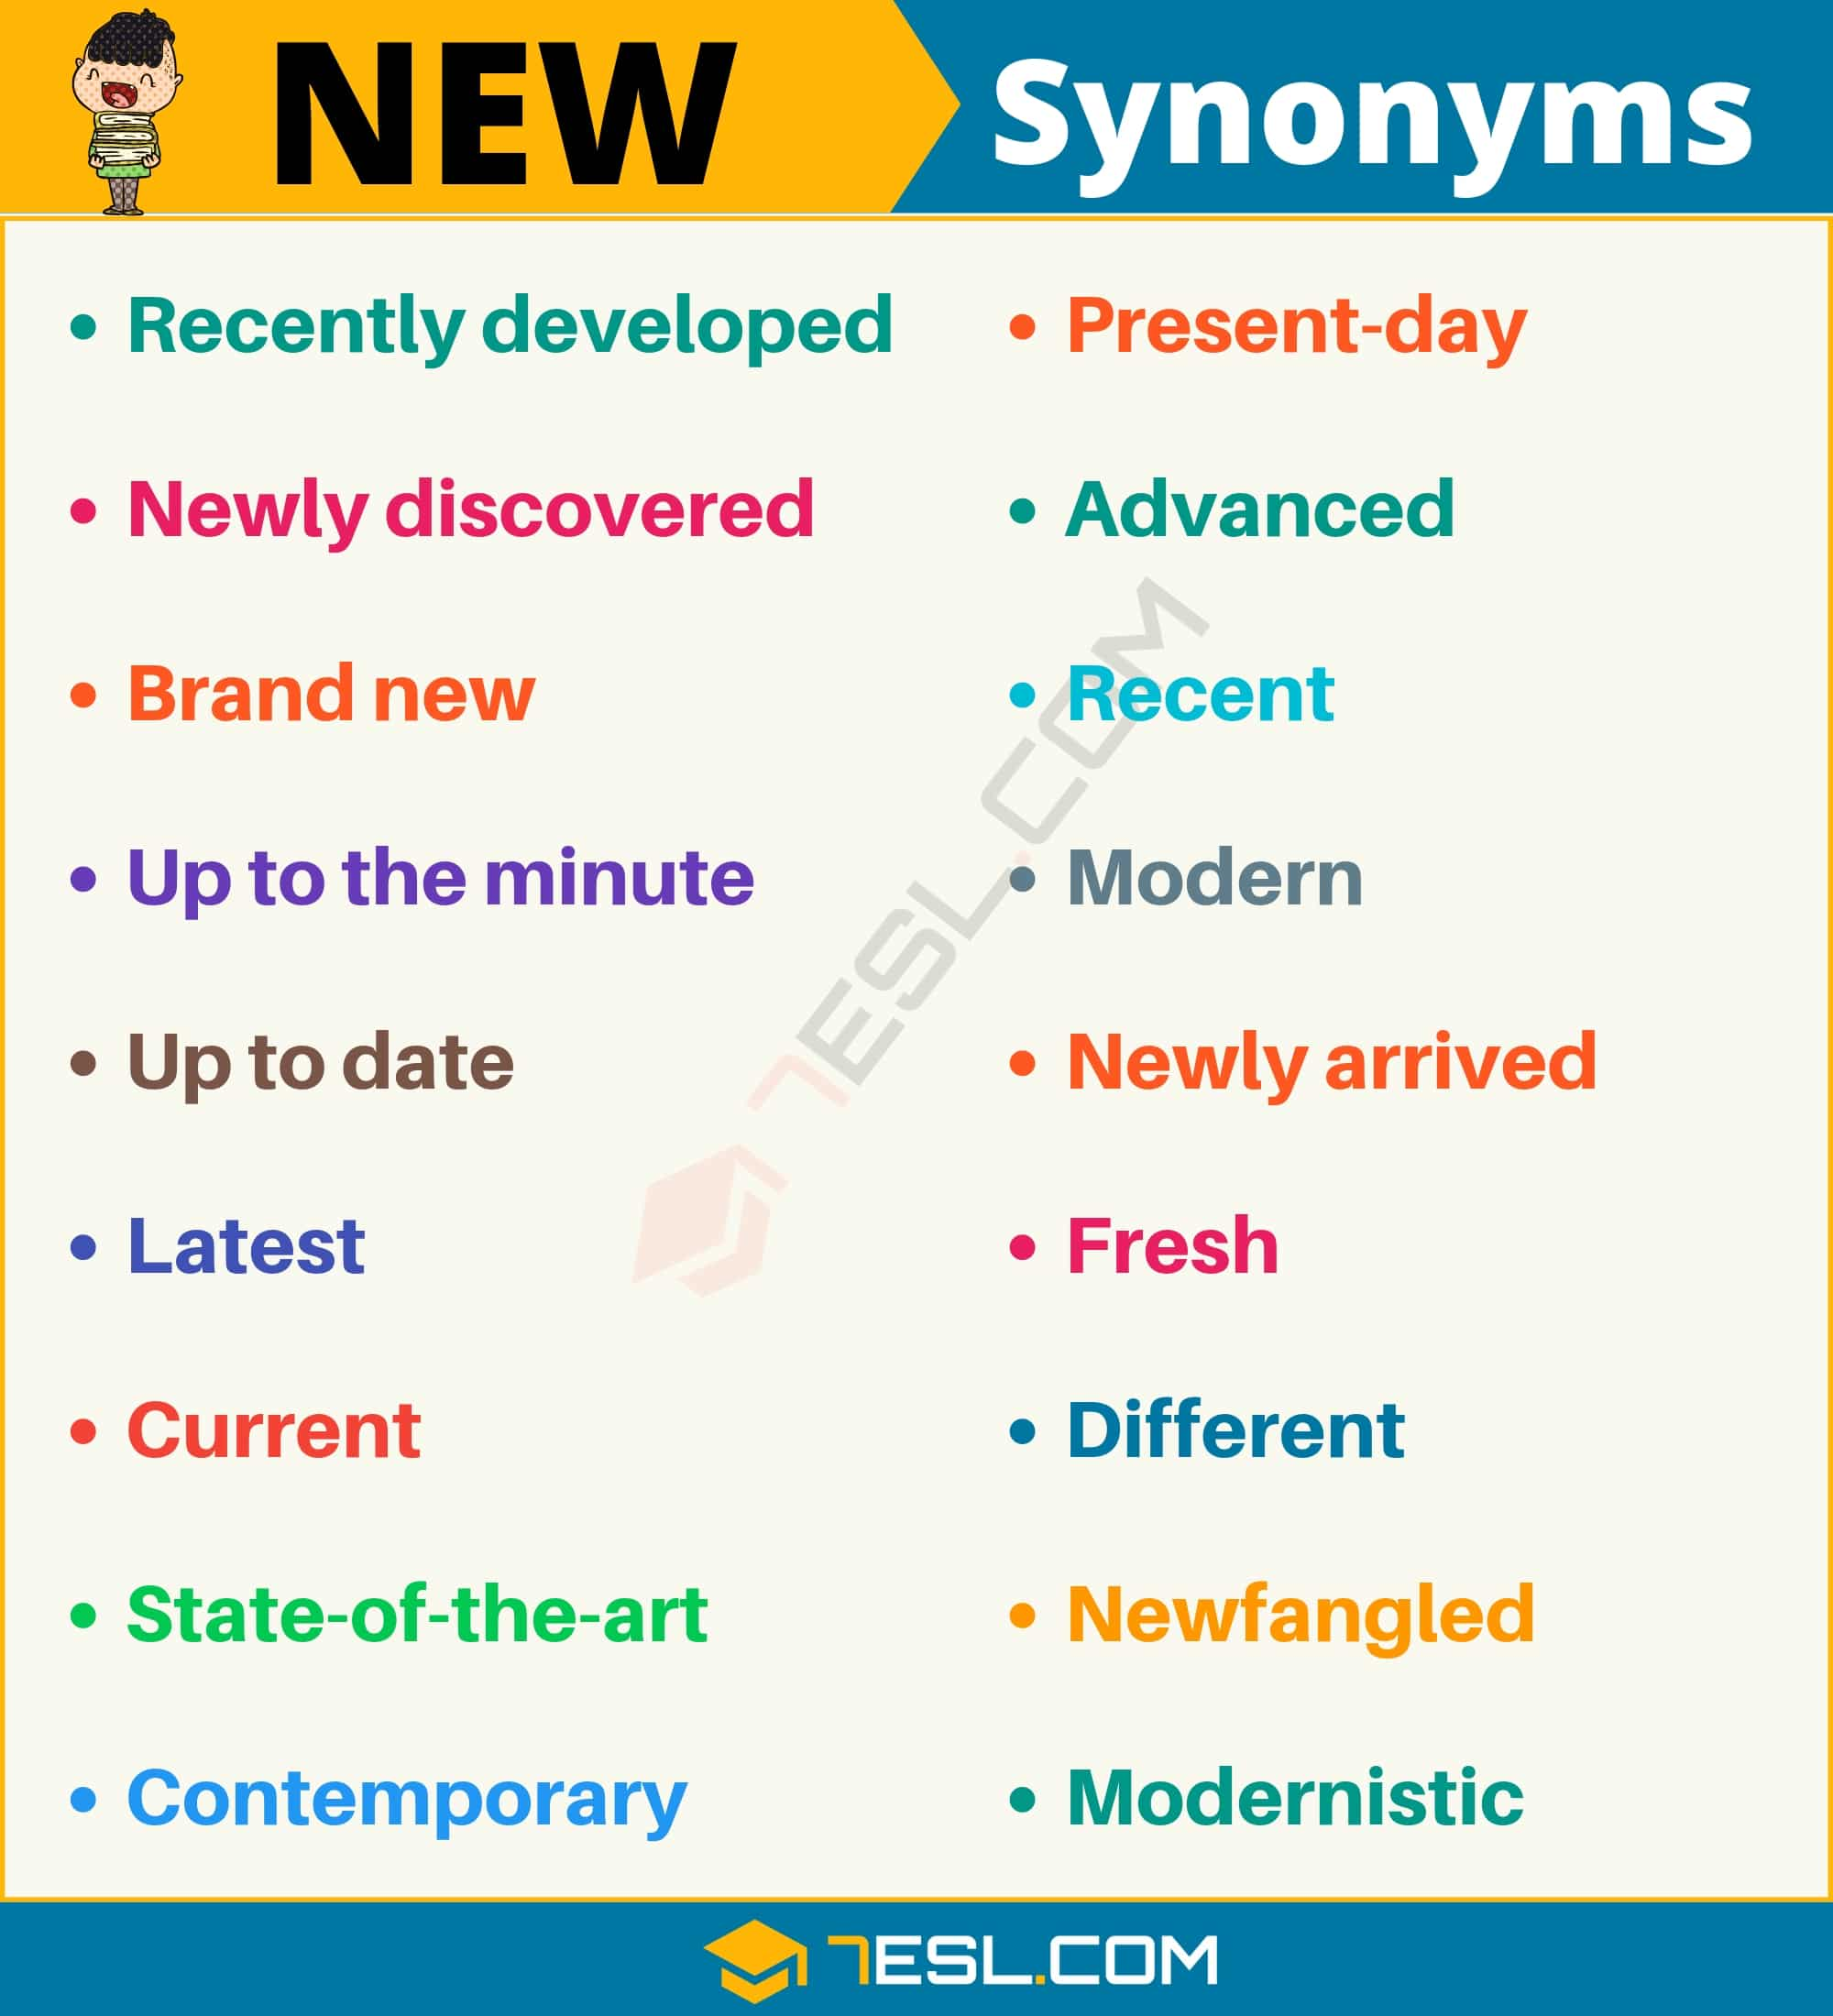 NEW Synonym: List of 18 Synonyms for New with Useful Examples